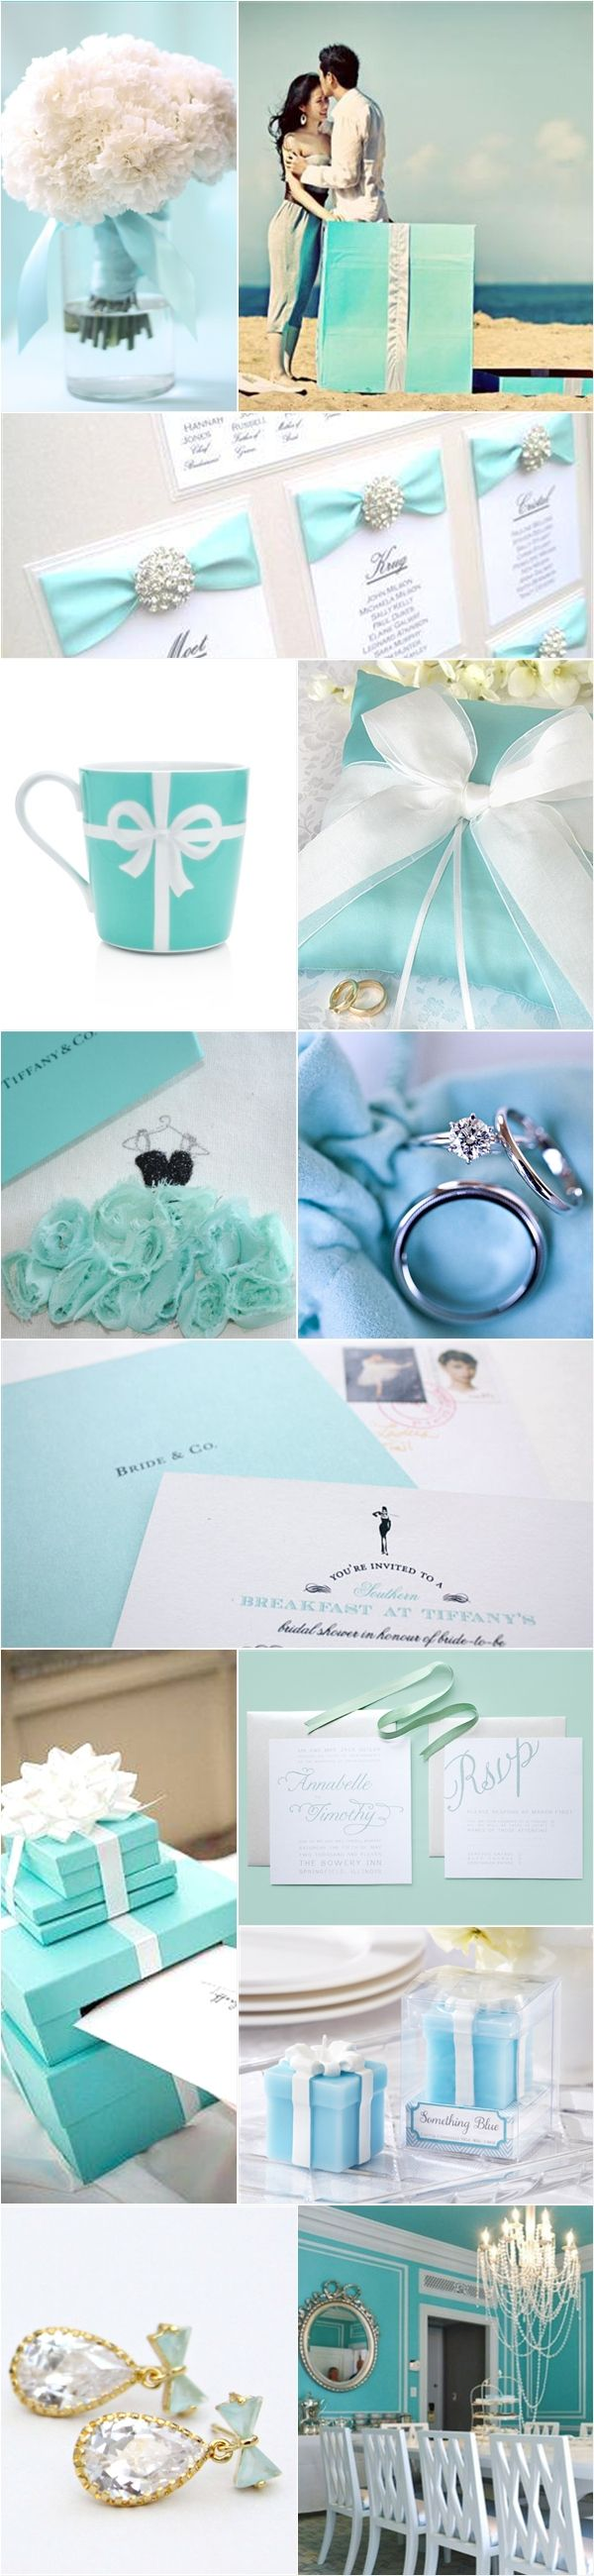 "The ""Tiffany blue"" has become one of the top dream wedding themes for modern brides.    Nothing says classic elegance and style quite like Tiffany's."